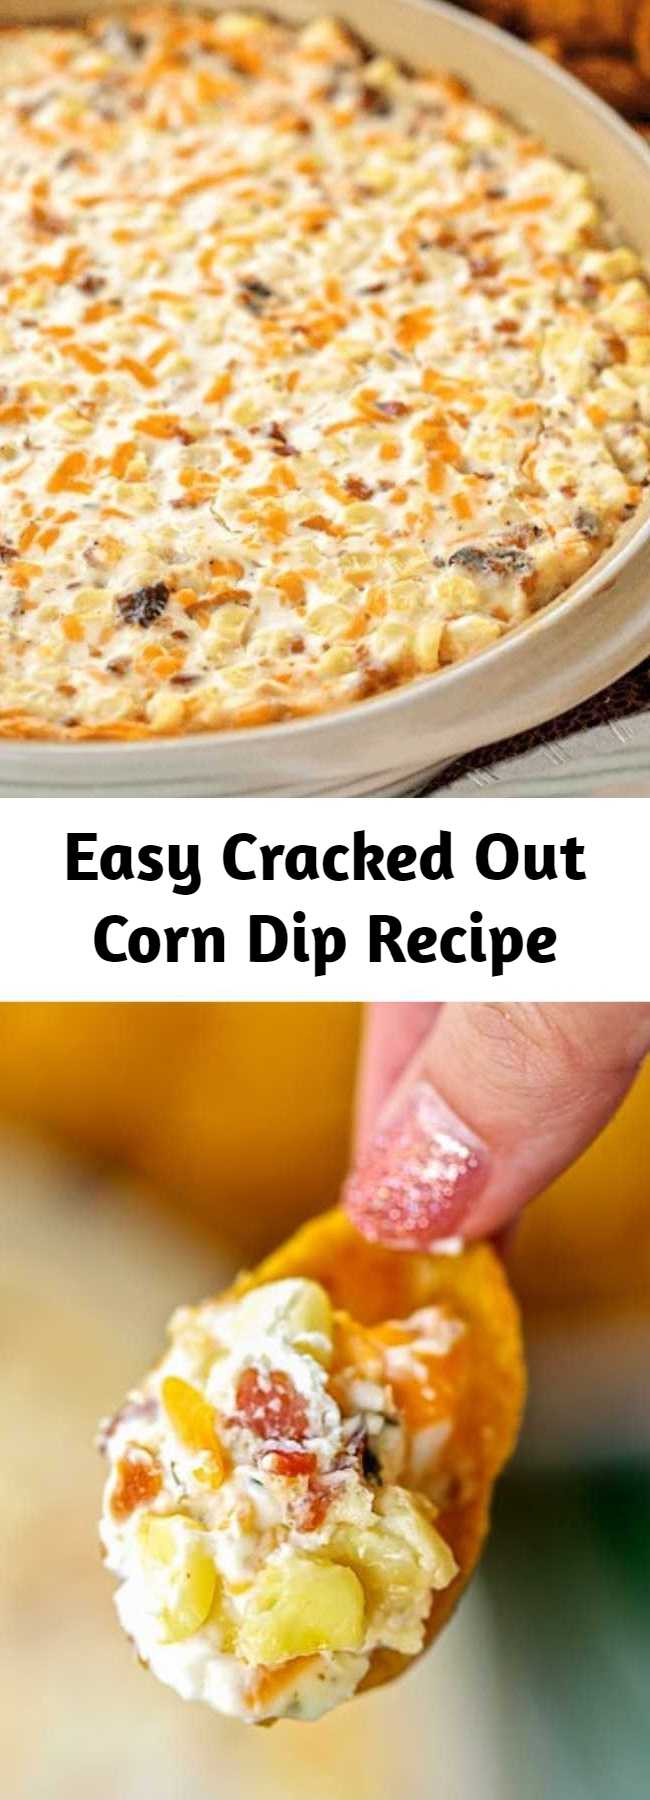 Easy Cracked Out Corn Dip Recipe - Corn, cream cheese, sour cream, cheddar, bacon and Ranch. I took this to a party and it was the first thing to go! Can make ahead and refrigerate until ready to eat. Our FAVORITE dip! YUM #dip #appetizer #partyfood #corn #bacon #ranch